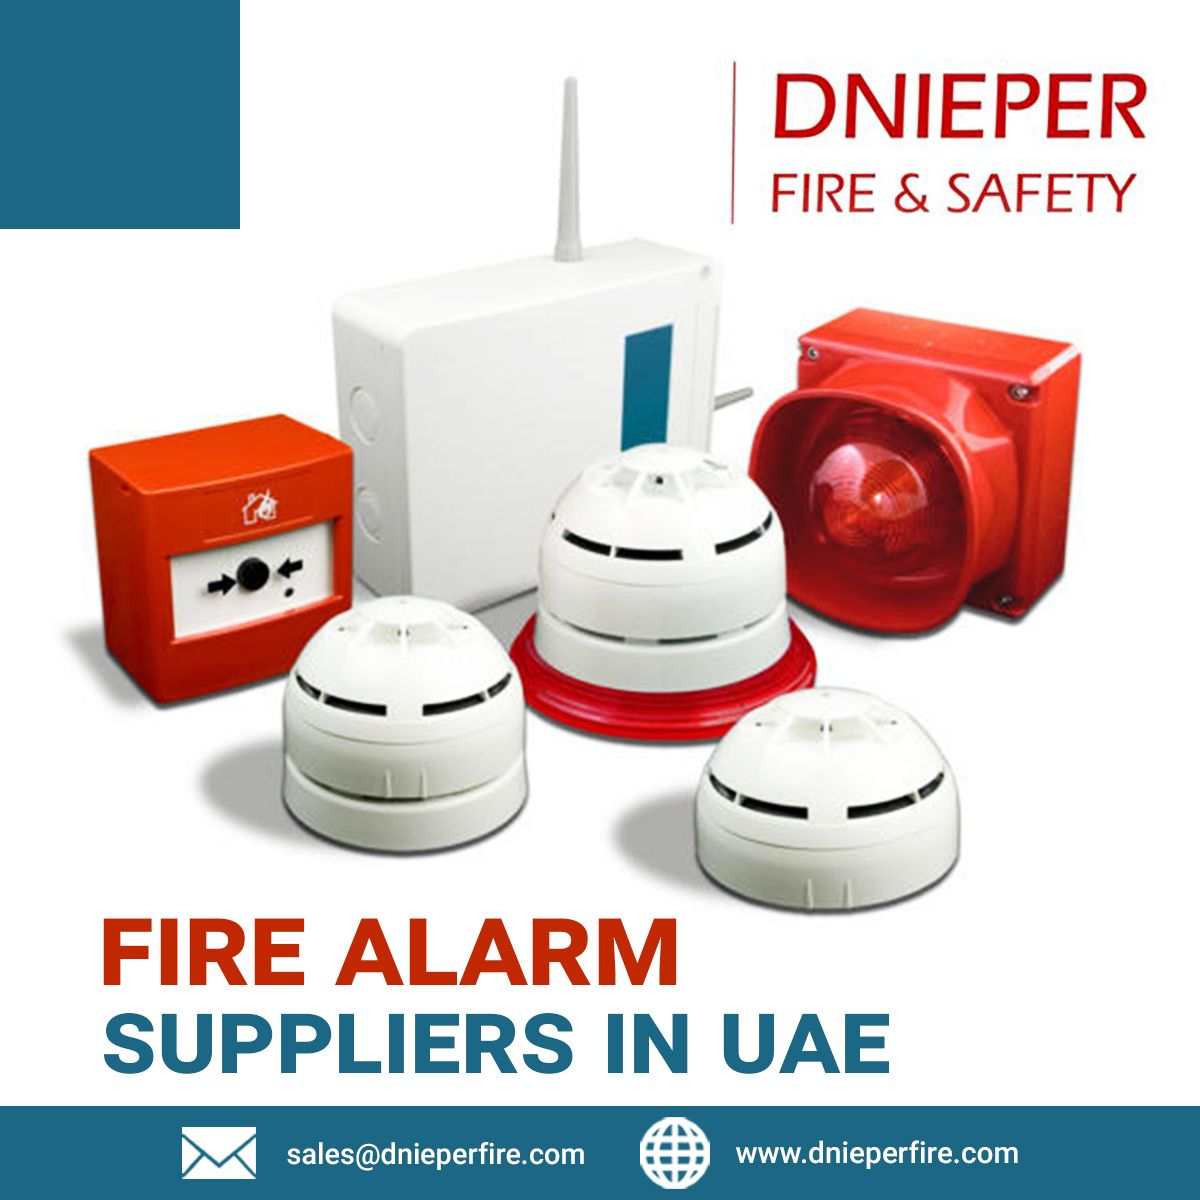 Dnieper ME is UAE based fire alarm supplier that offers